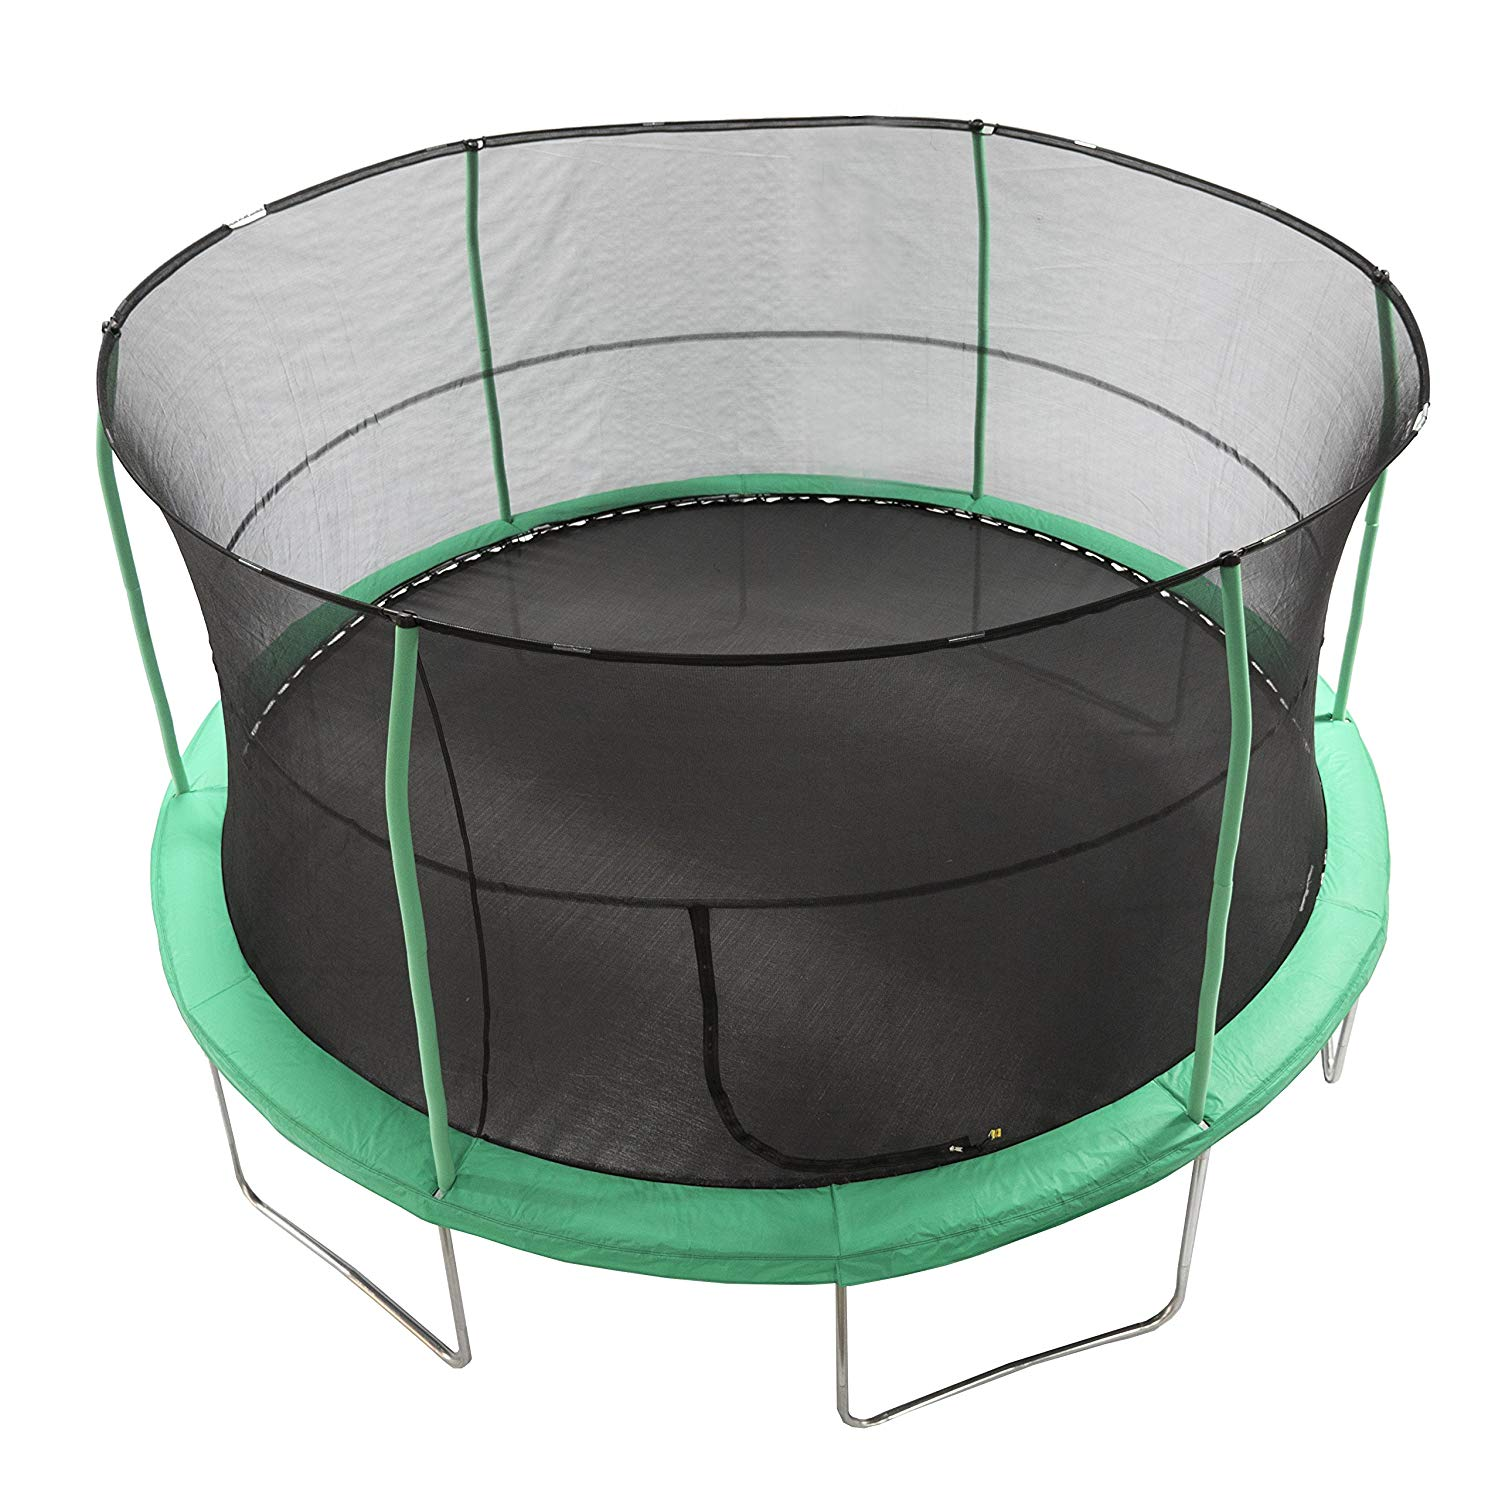 JumpKing 15' Bounce N' Dunk Trampoline & Enclosure Combo with Basketball Hoop